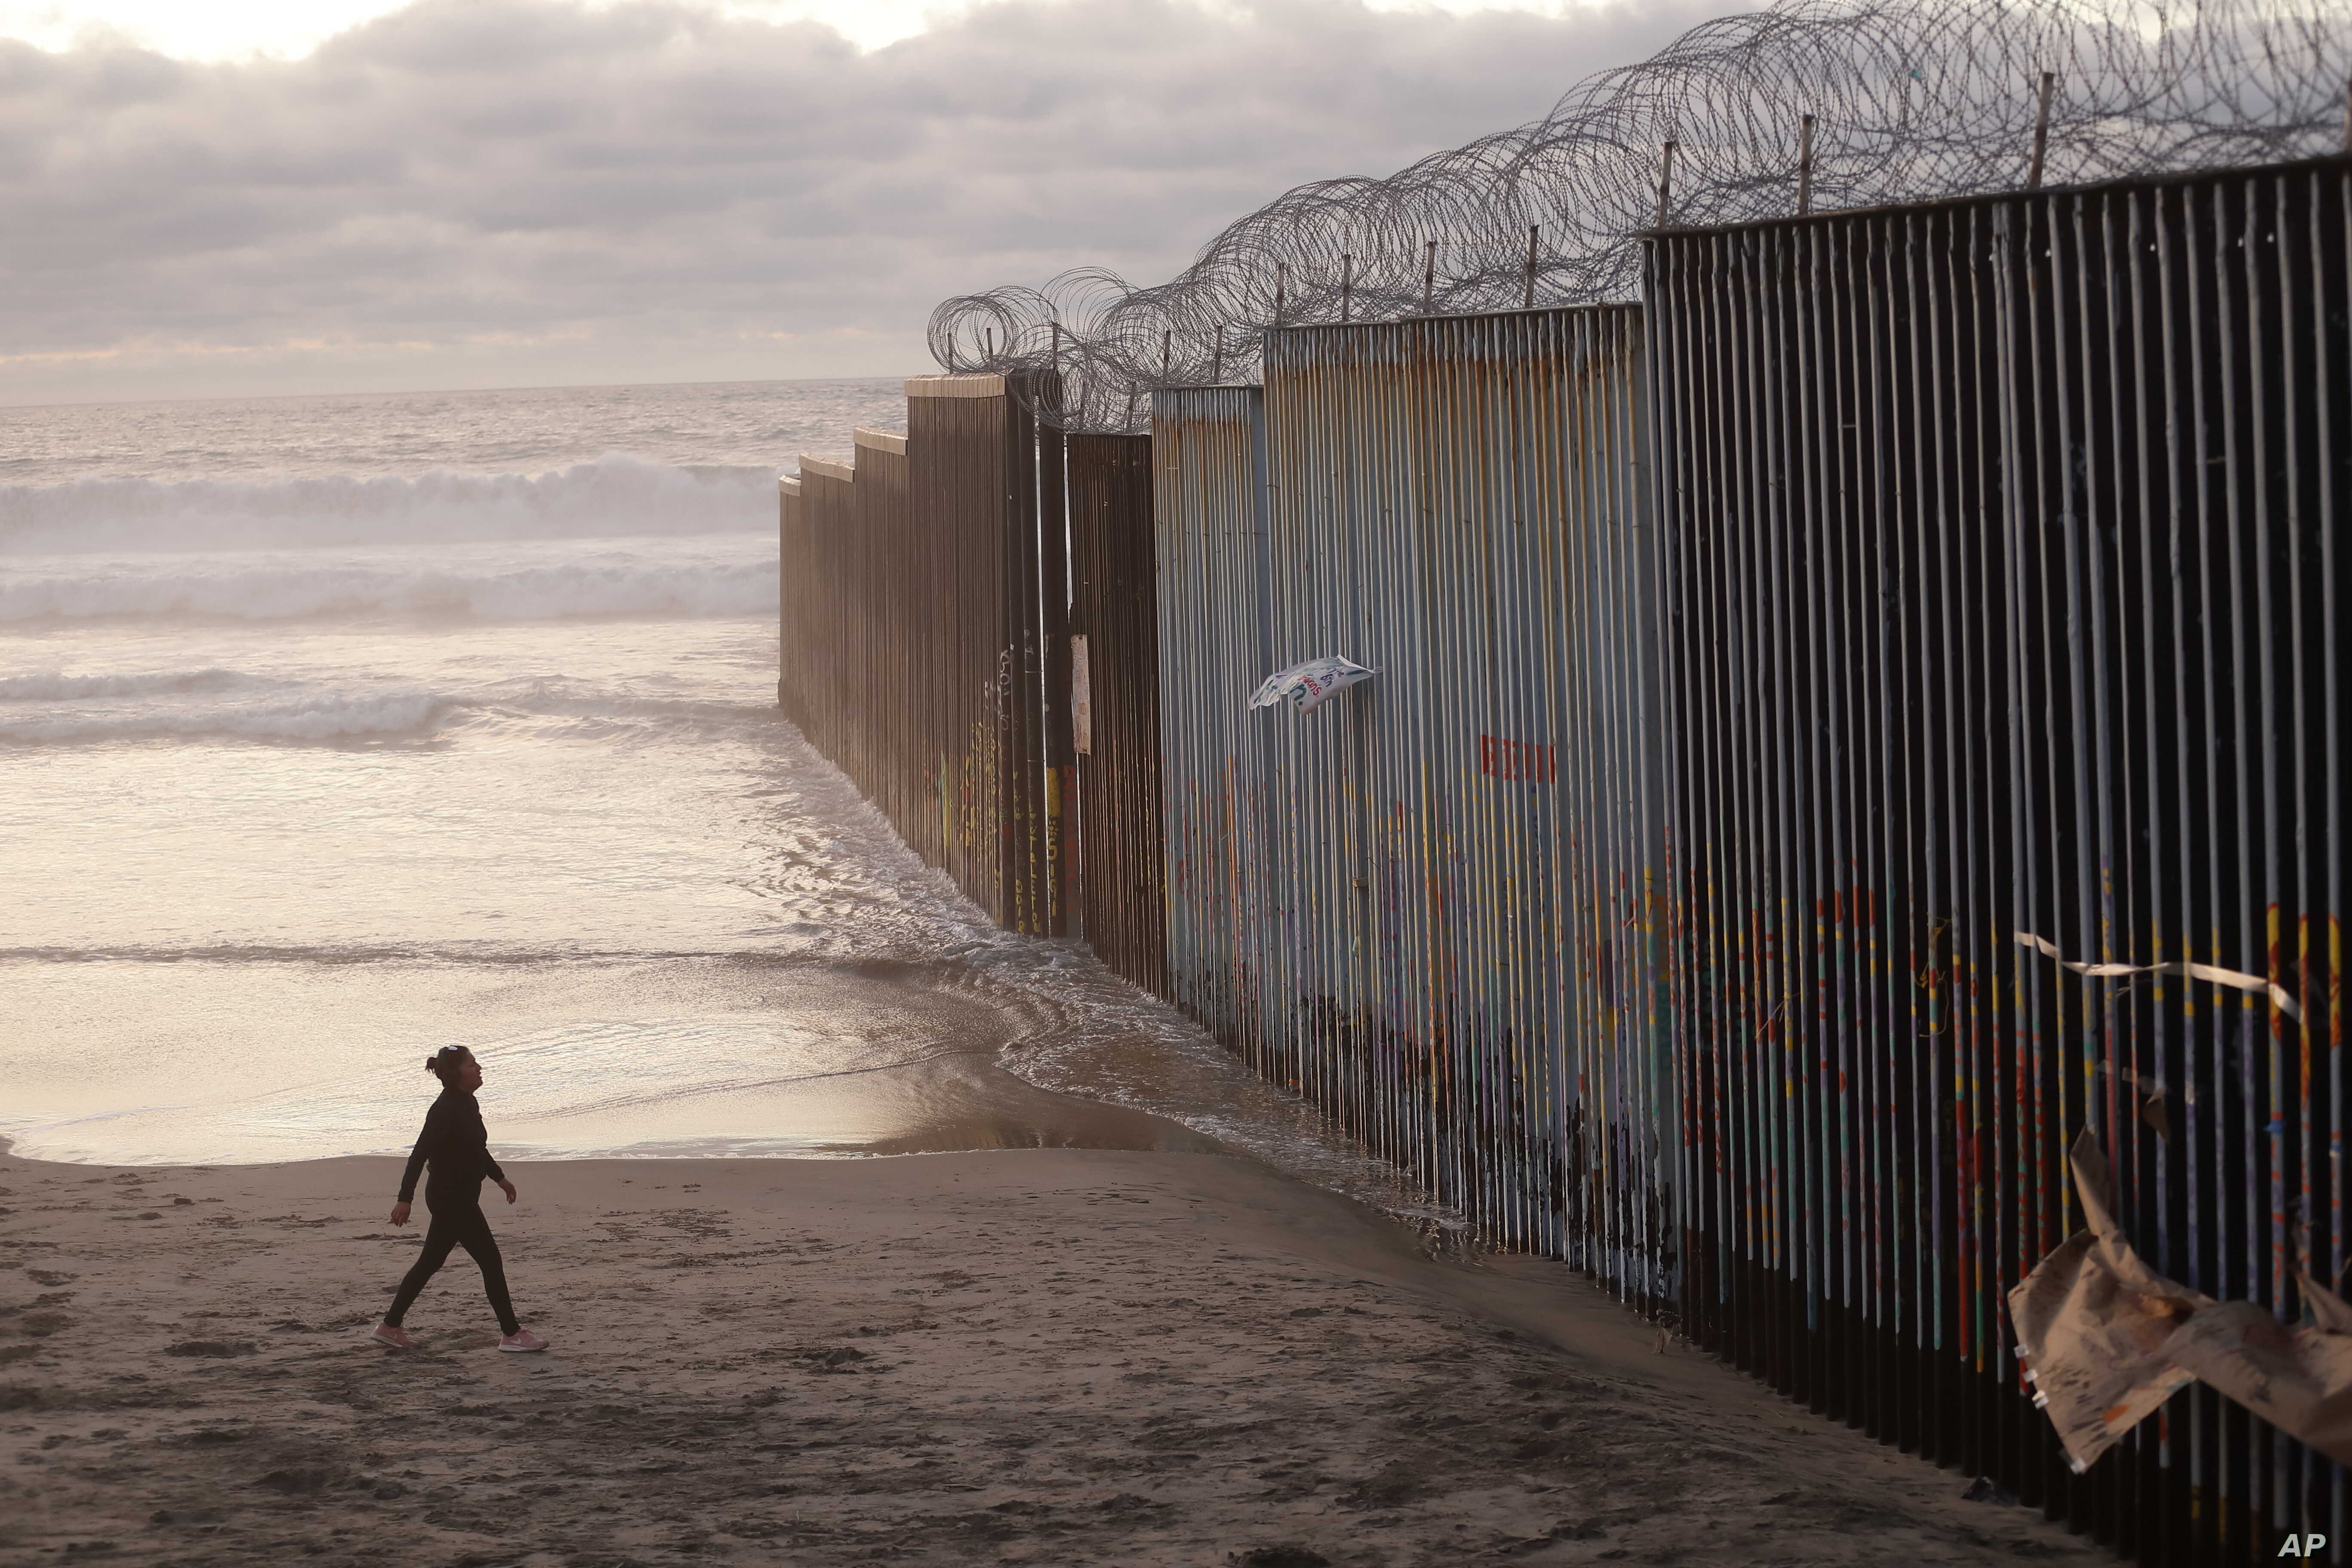 A woman walks on the beach, Jan. 9, 2019, next to the border wall topped with razor wire in Tijuana, Mexico.